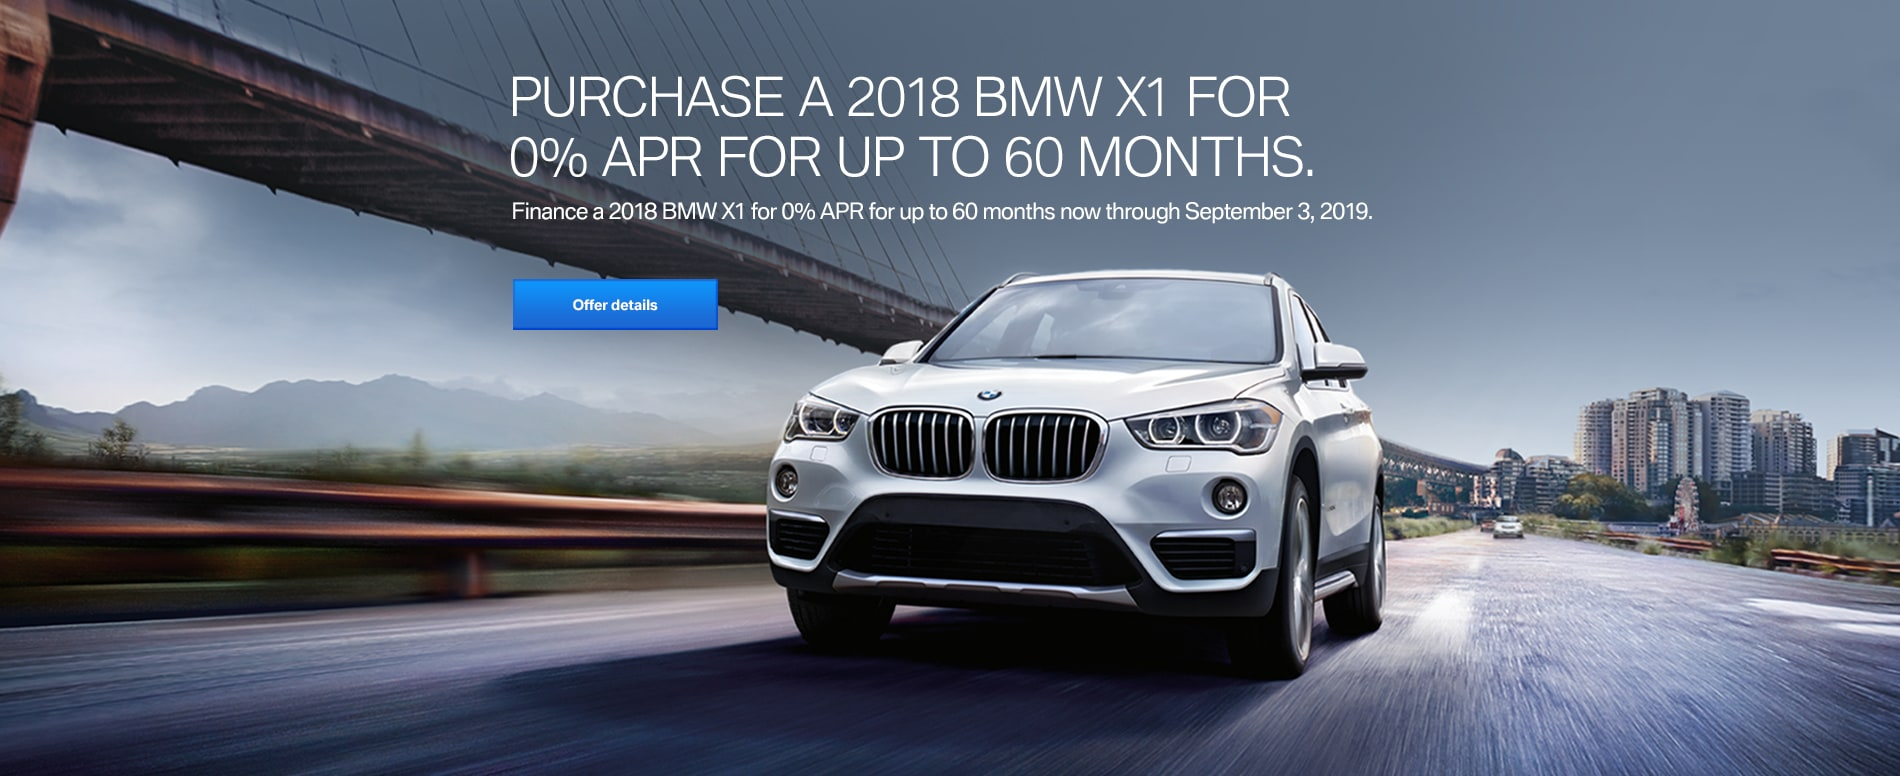 New Bmw Used Car Dealer In Shelby Township Mi Bmw Of Rochester